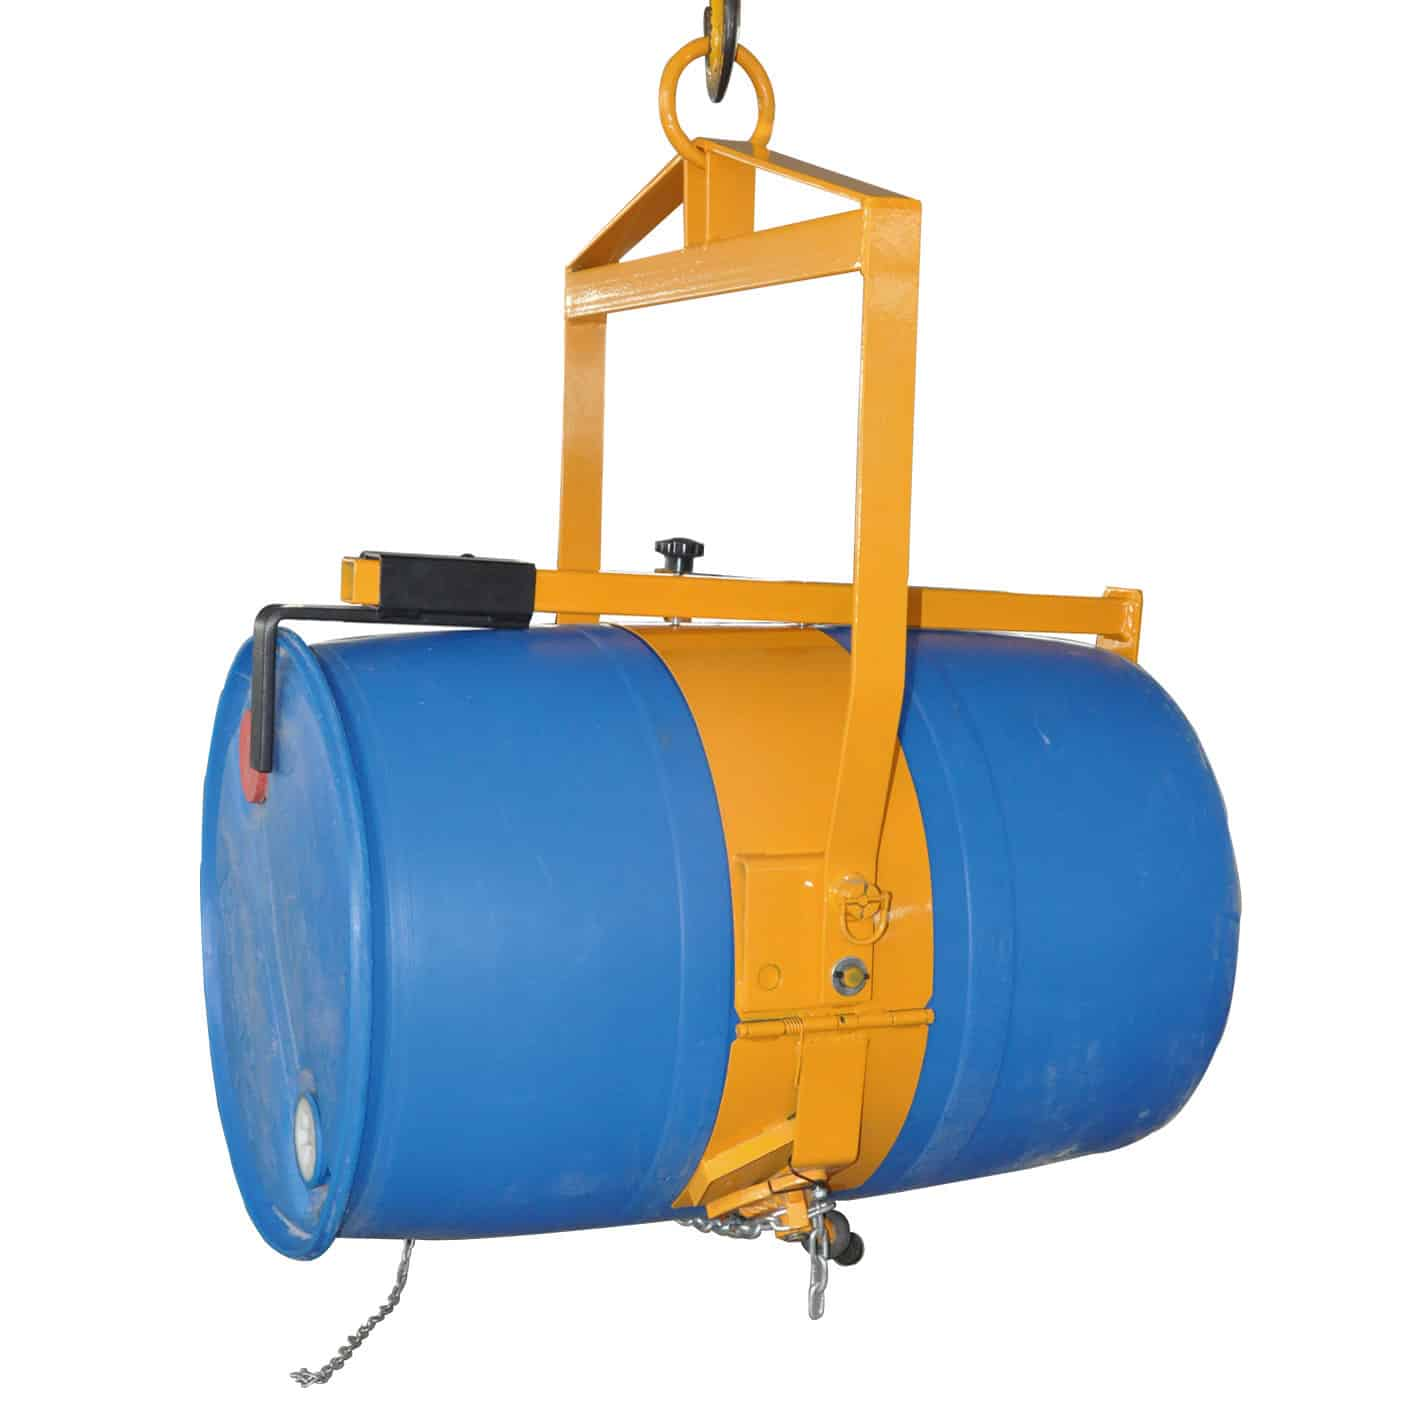 Drum can be tilted for positioning & pouring by pulley & chain